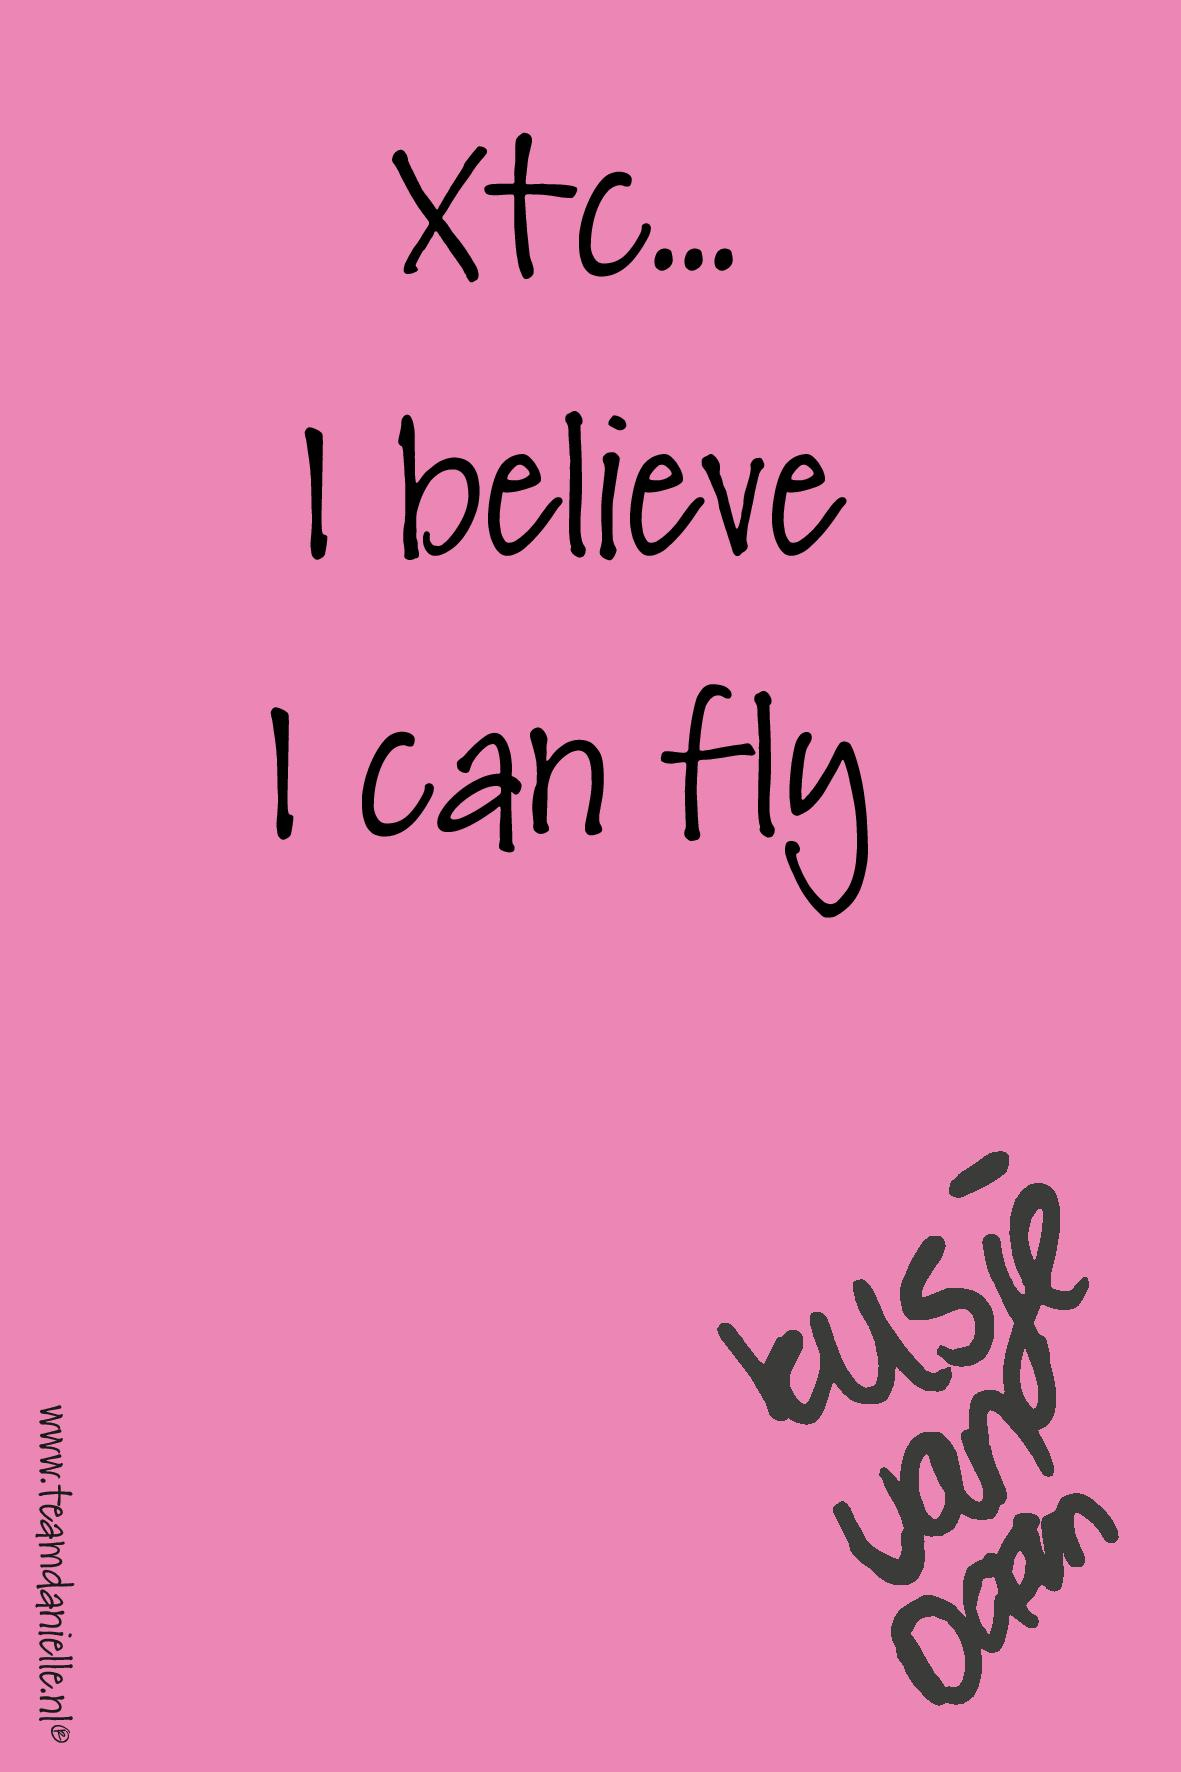 Kusje-190104-I believe I can fly